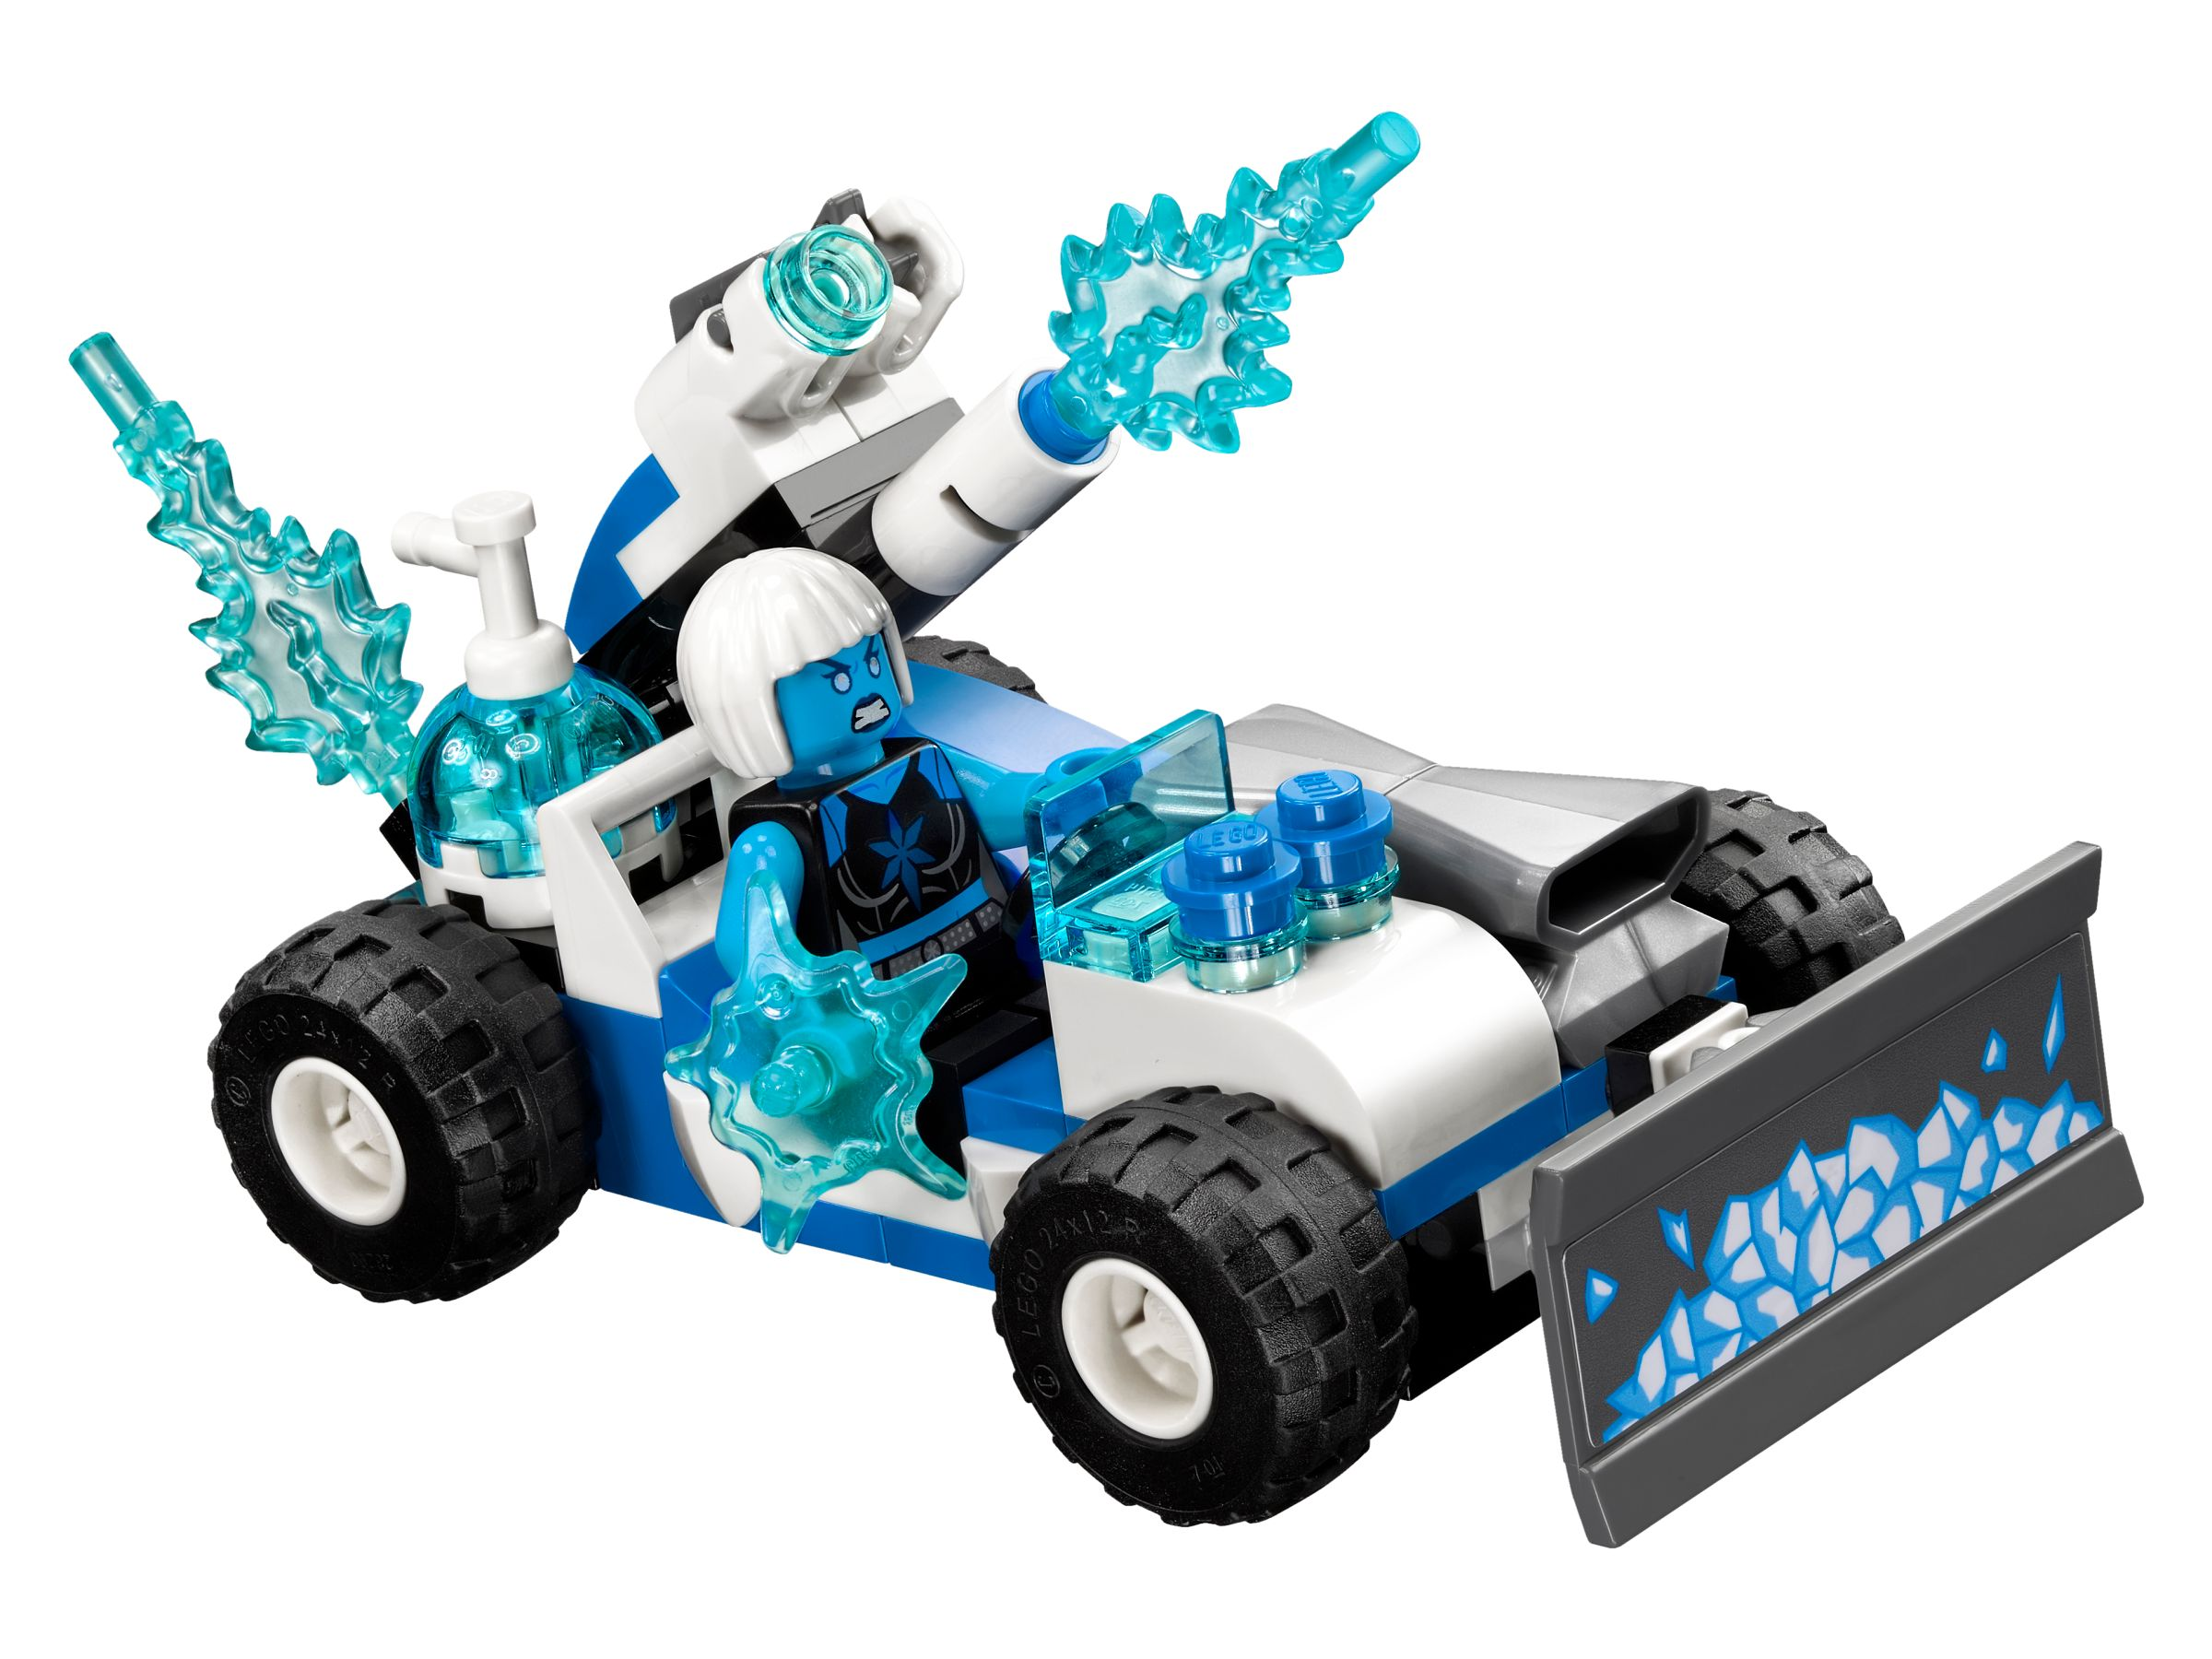 LEGO Super Heroes 76098 Speed Force Freeze Verfolgungsjagd LEGO_76098_alt4.jpg